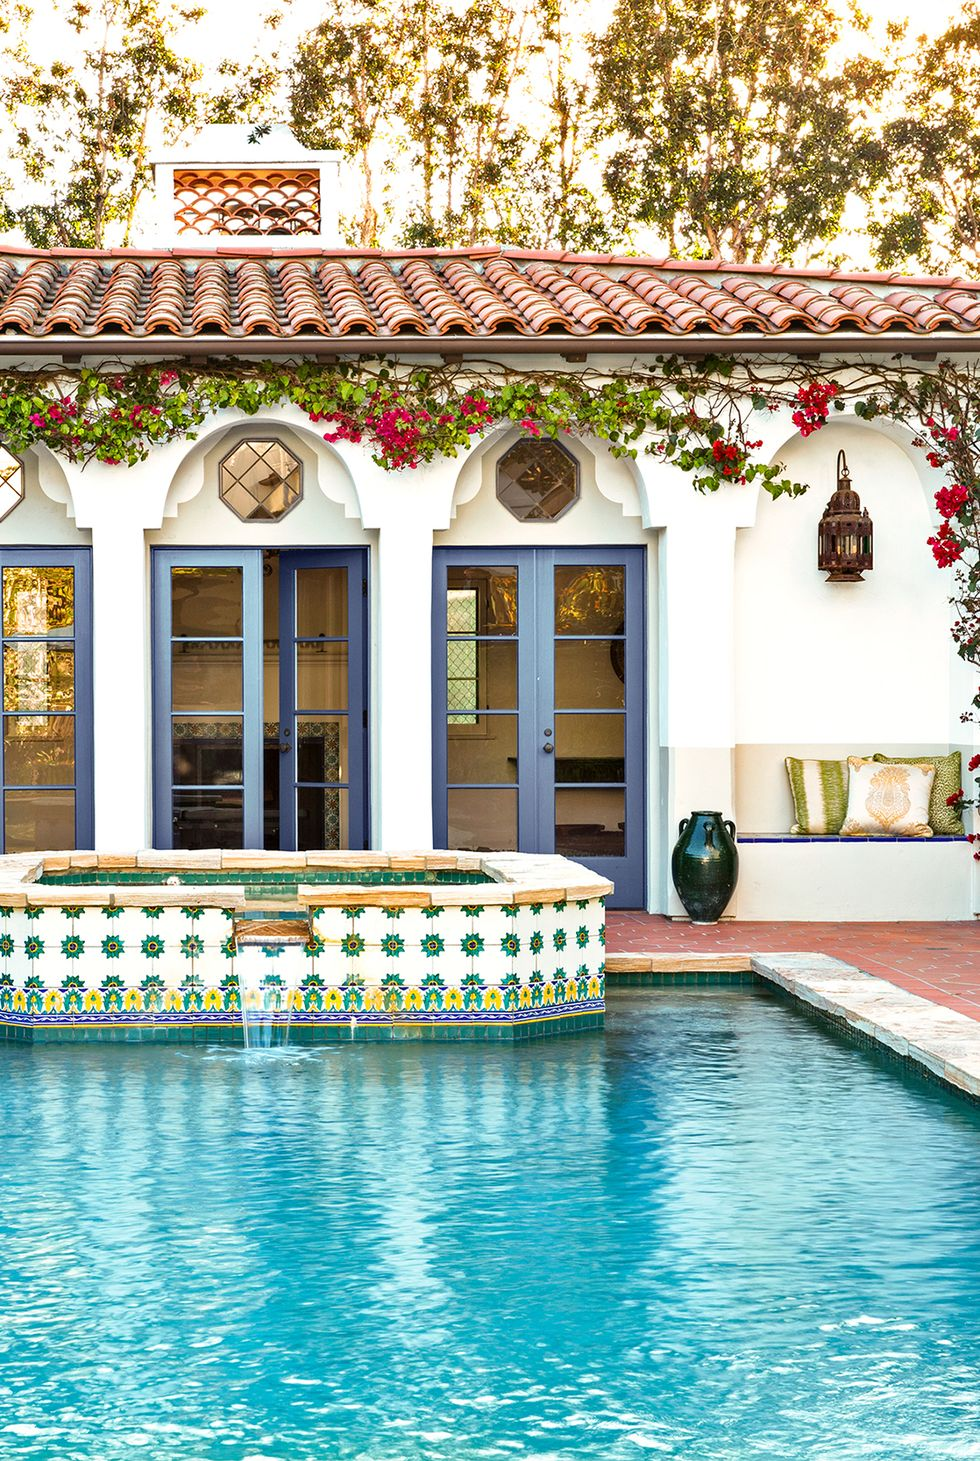 22 Pool House Design Ideas That Make Life Feel Like A Permanent Vacation In 2020 Hacienda Style Homes Spanish Style Homes Pool House Designs